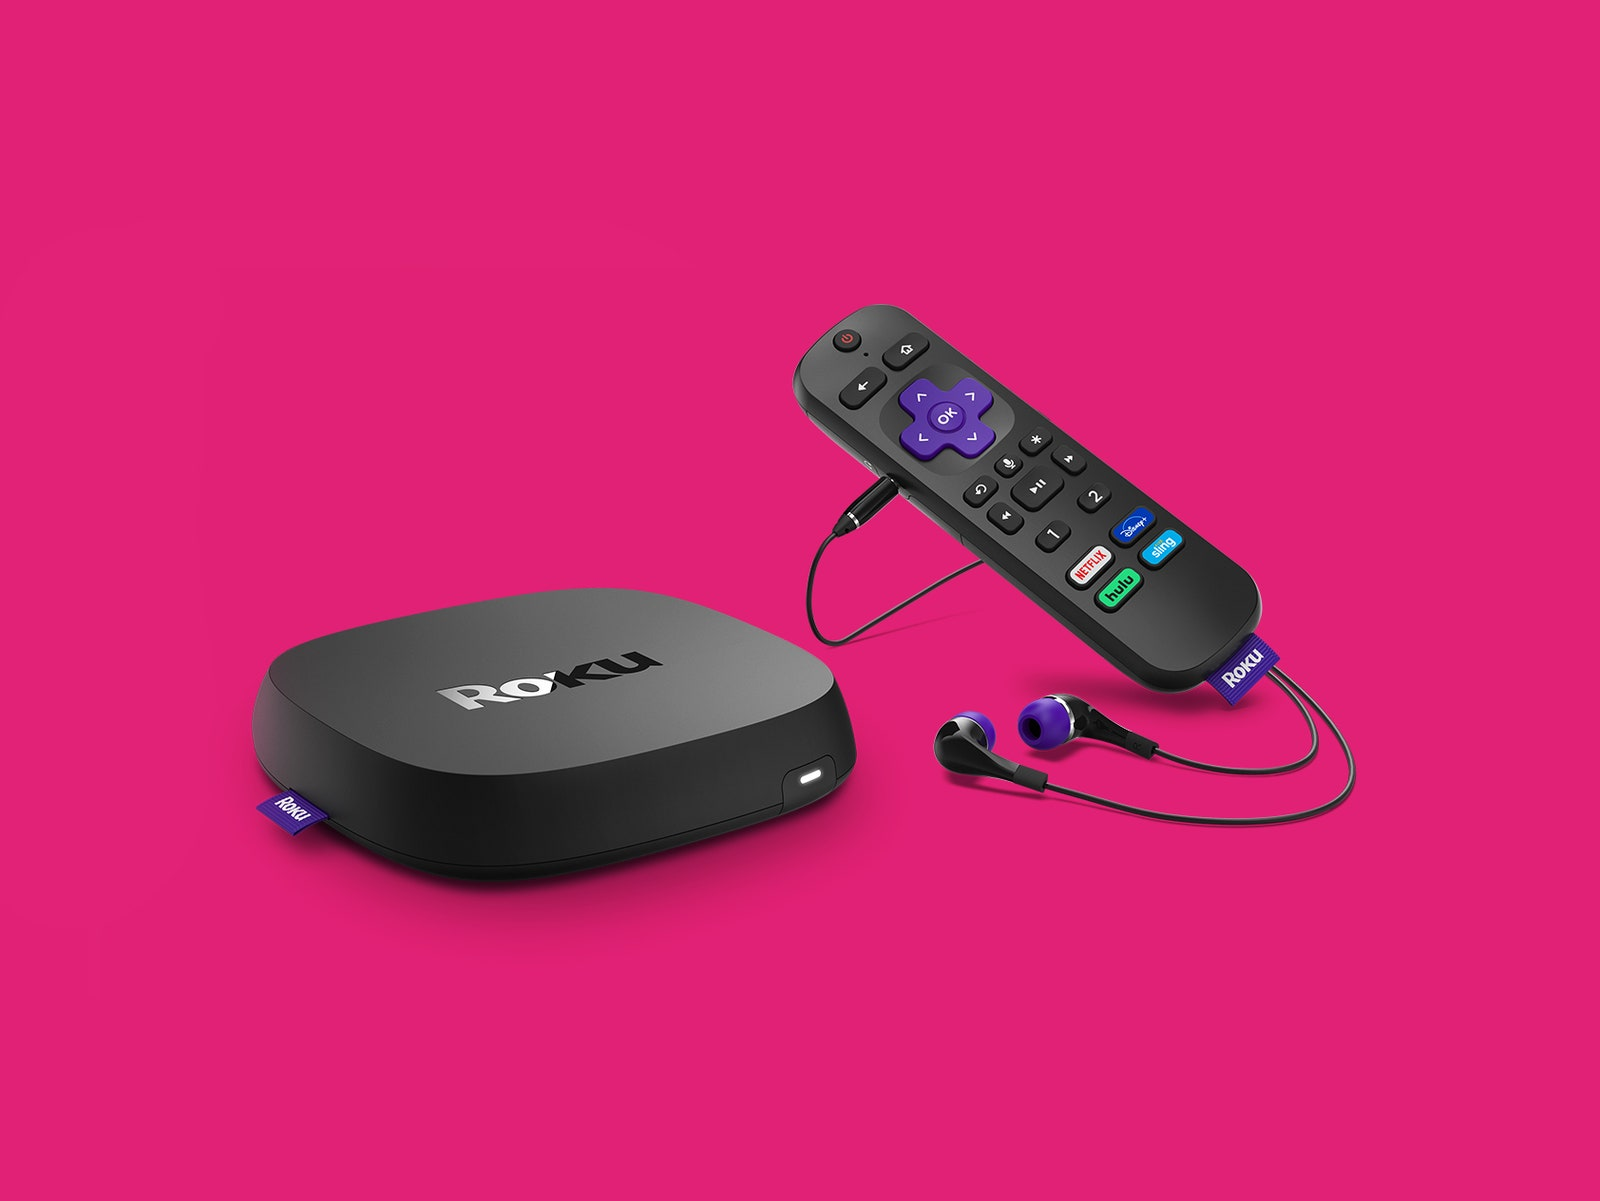 Roku device remote and headphones